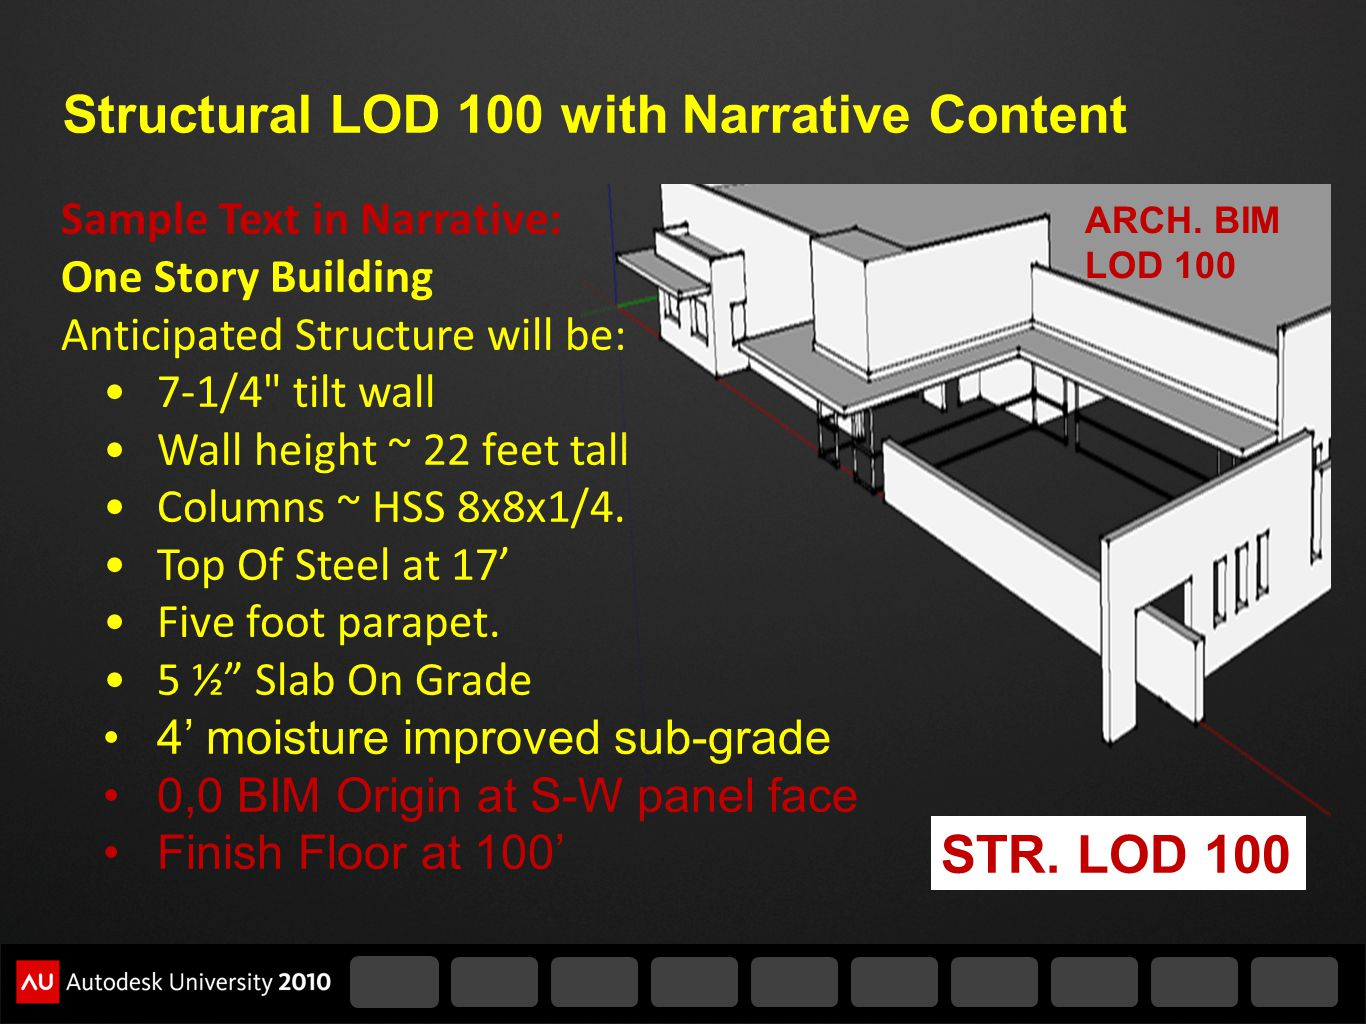 Structural LOD 100 with Narrative Content